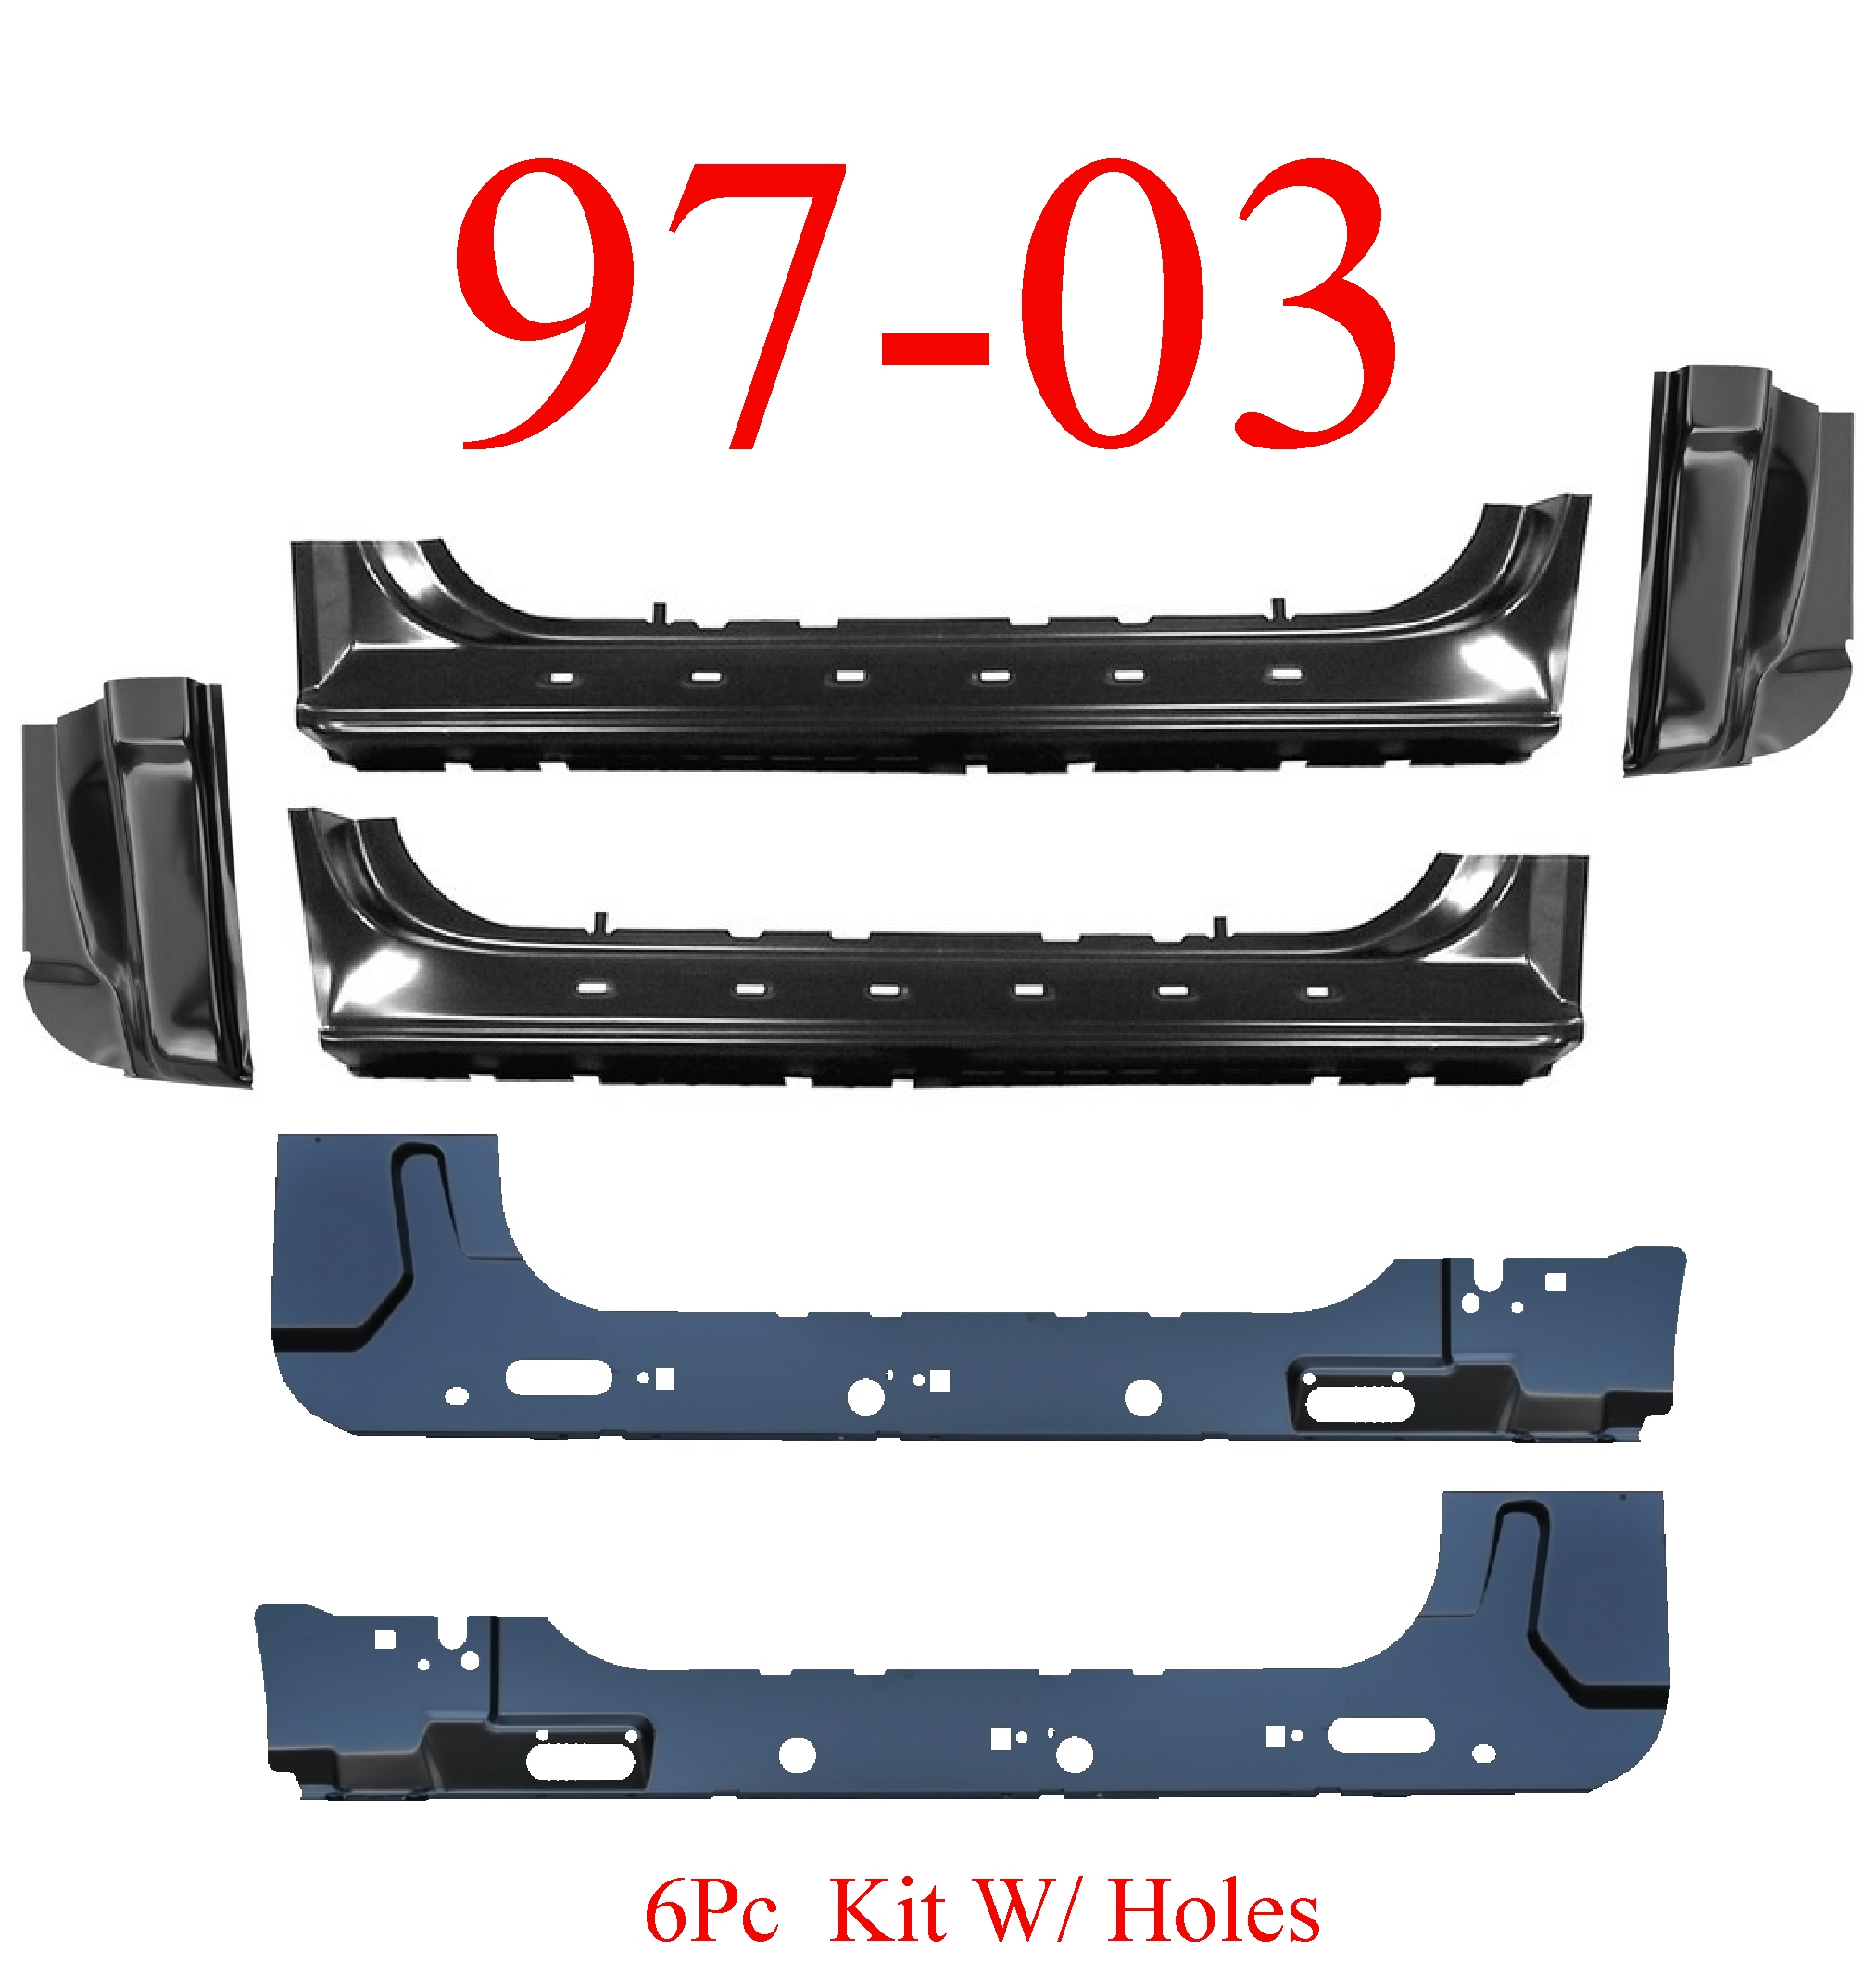 97-03 F150 6Pc Extended Rocker, Inner & Cab Corner Kit W/ Holes